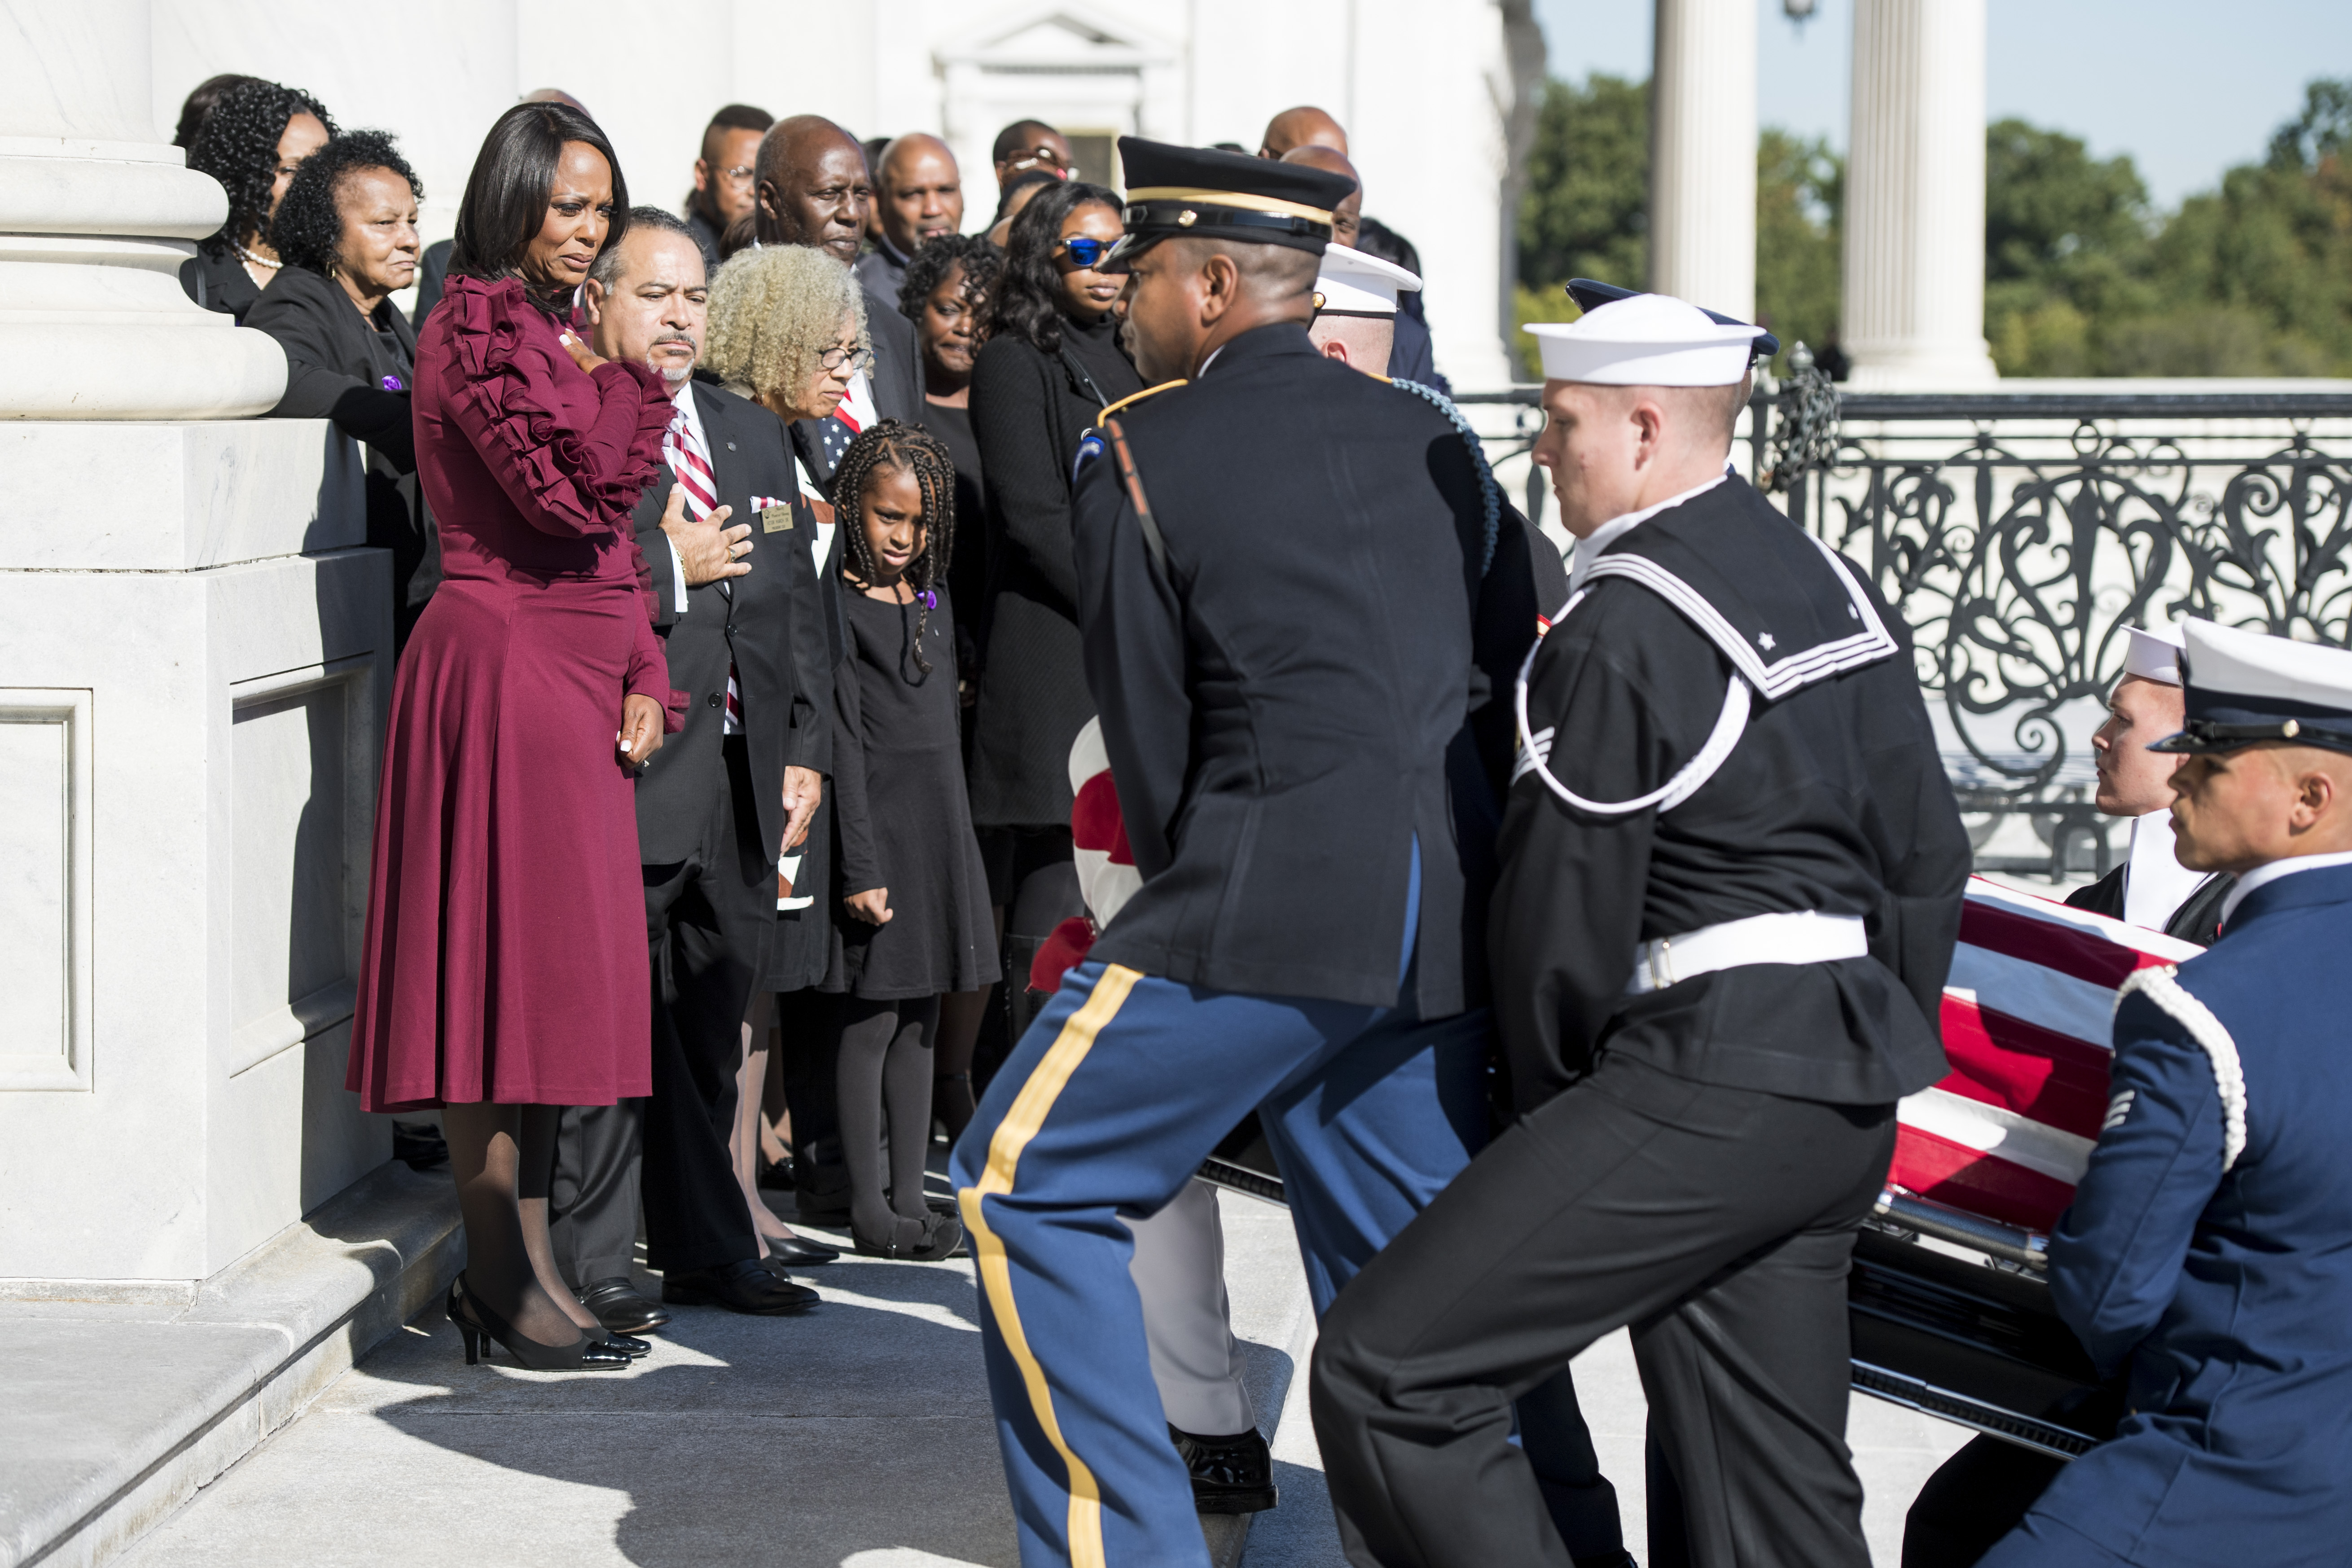 UNITED STATES - OCTOBER 24: Rep. Elijah CummingsÕ widow Maya Rockeymoore and family members look on as the flag-draped casket of Rep. Elijah Cummings, D-Md., is carried by members of the honor guard up the steps of the U.S. Capitol in Washington, on Thursday, Oct. 24, 2019. (POOL Photo By Bill Clark/CQ Roll Call)